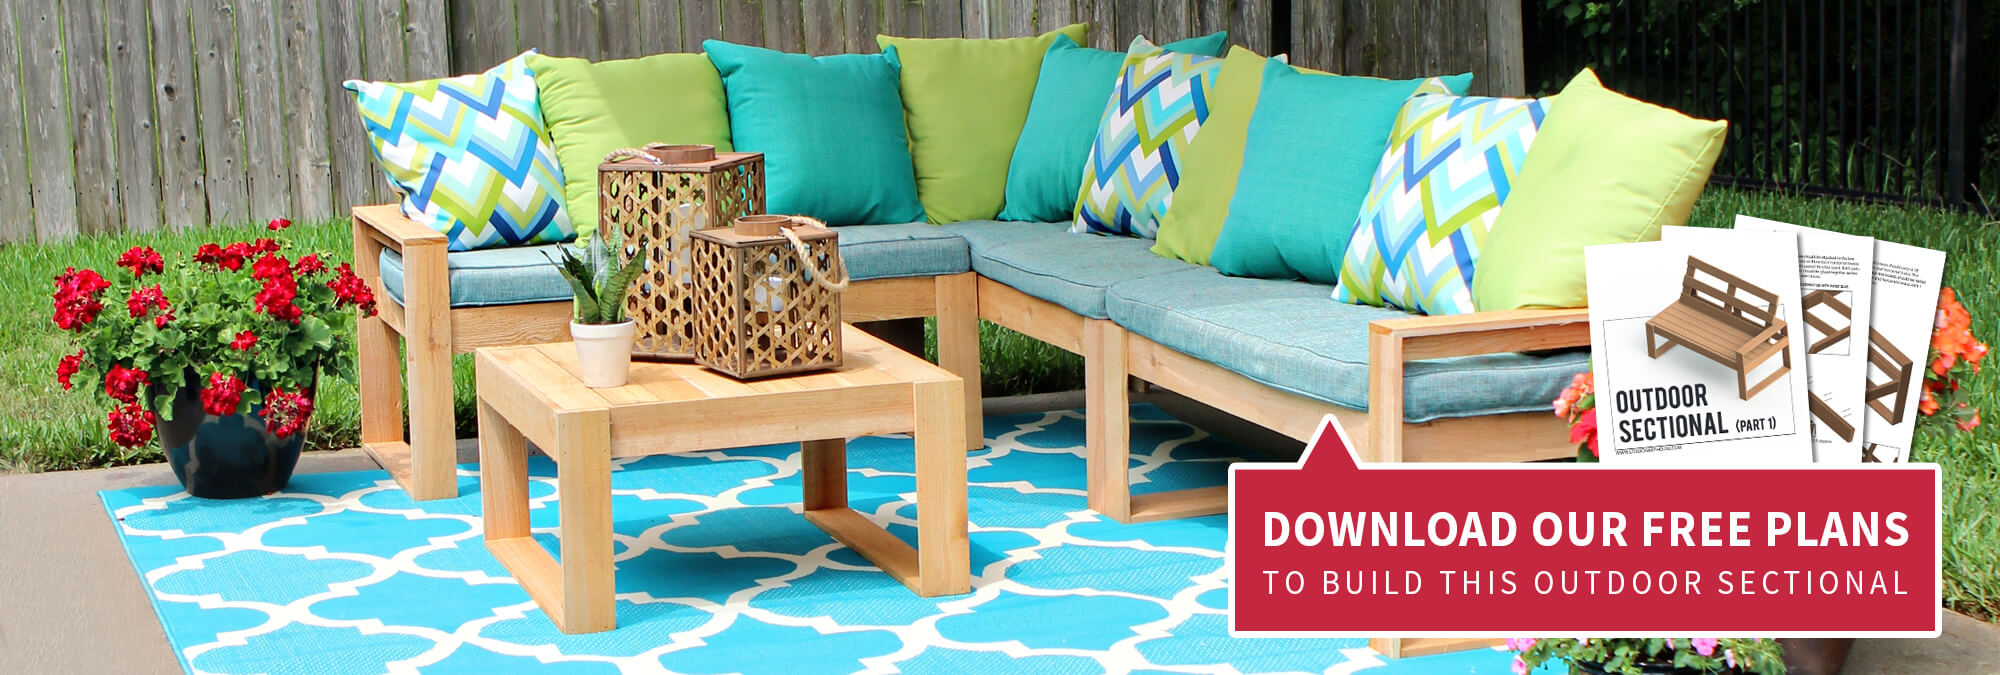 Free DIY Outdoor Sectional Plans